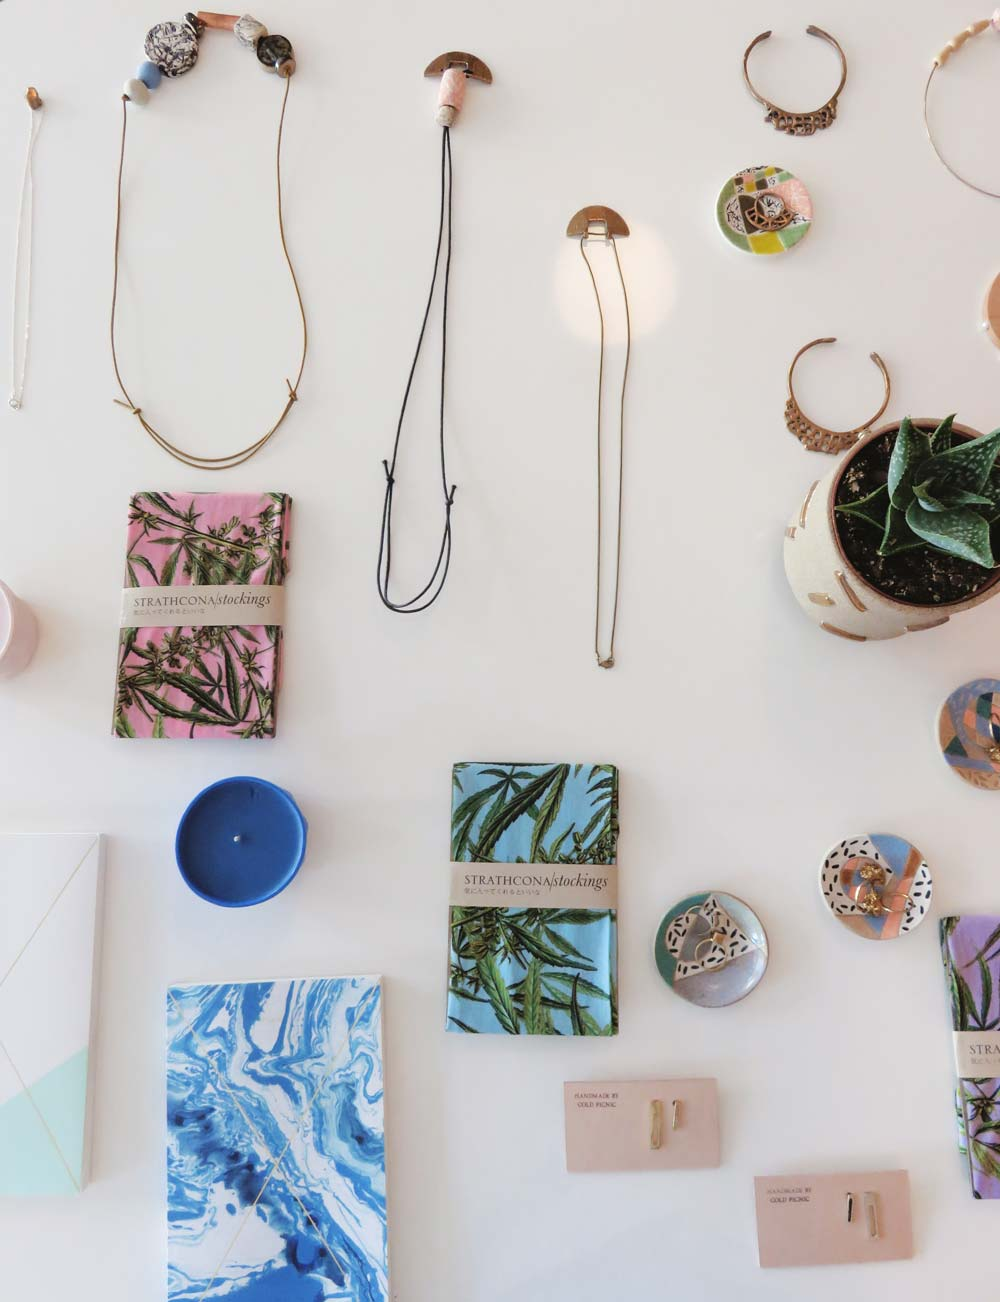 They carry a selection of accessories, from fun printed tights to organic-chic jewelry